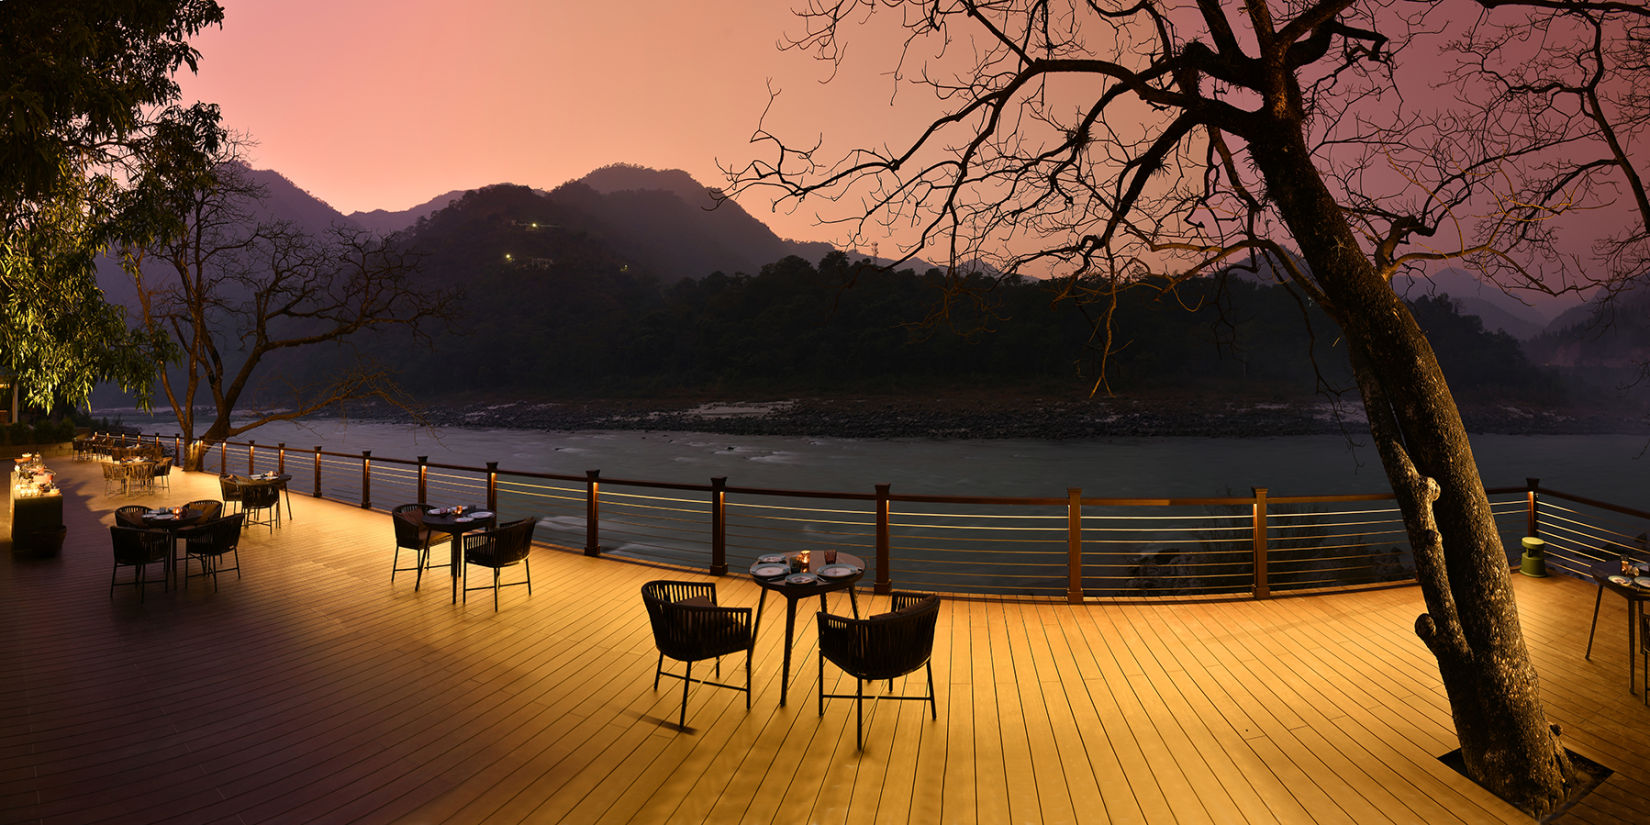 Dining at The Glasshouse on the Ganges